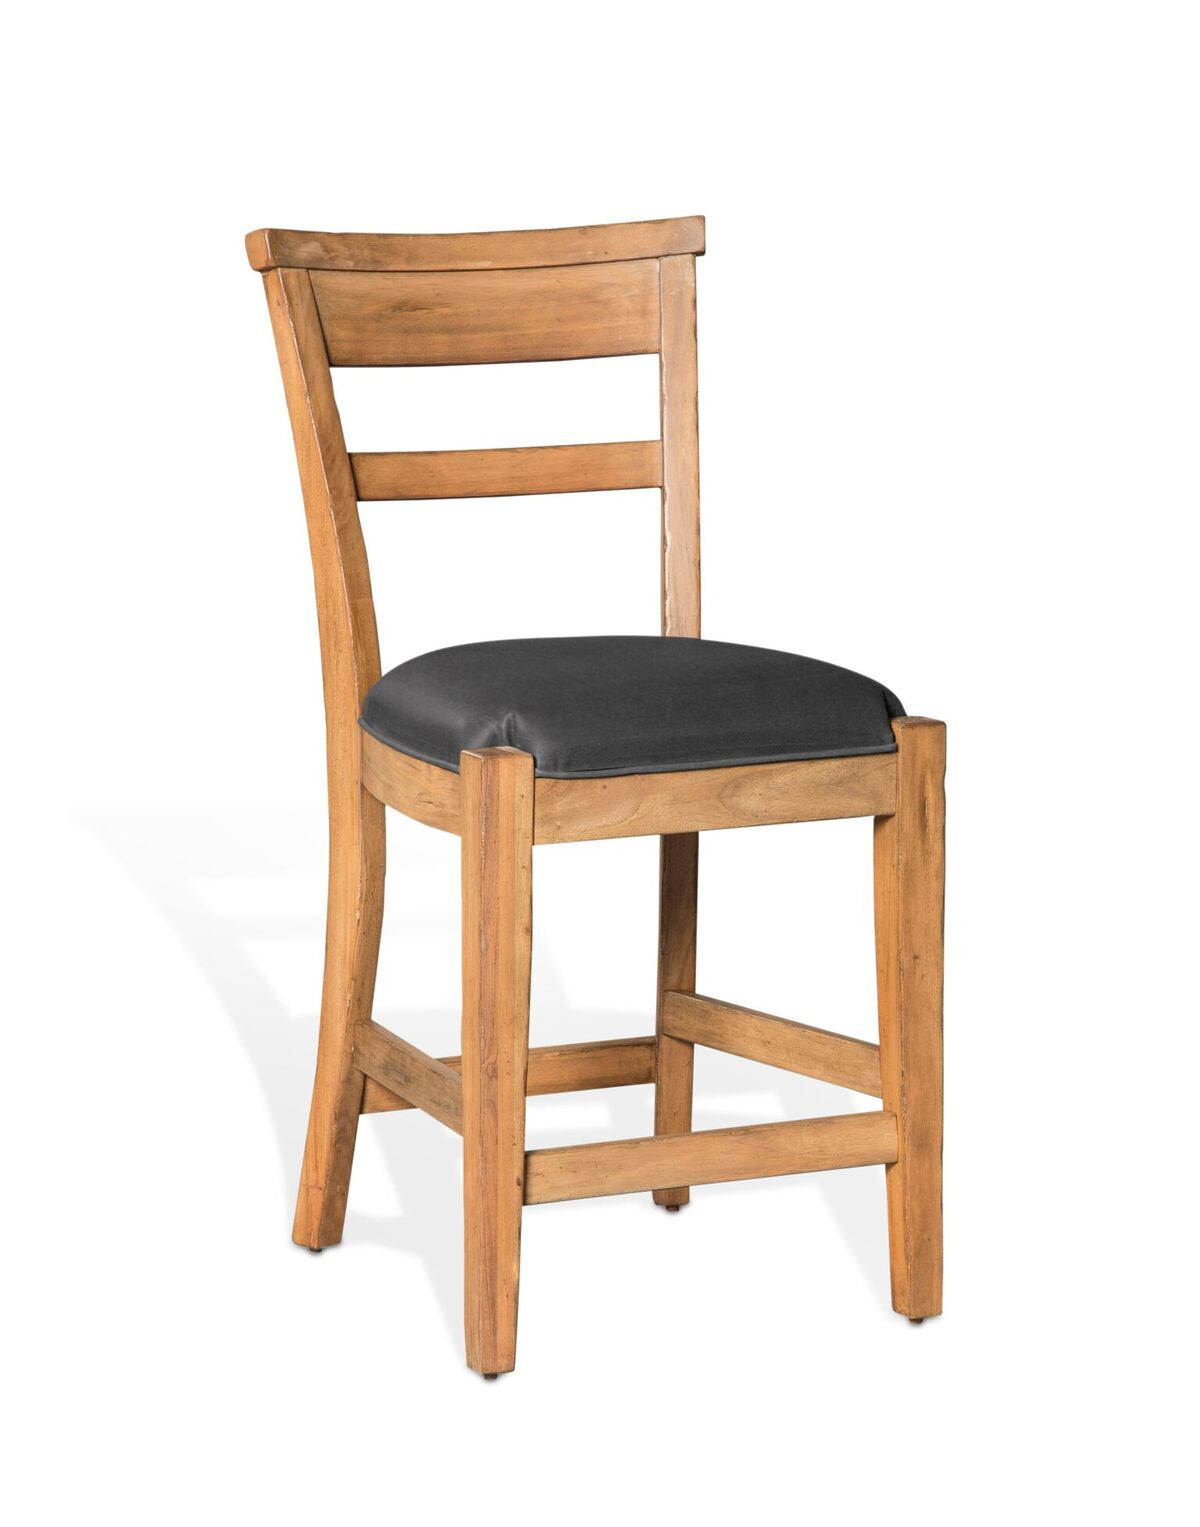 Stupendous 2 Sunny Designs 24 Inch Ladder Back Bar Stools Ncnpc Chair Design For Home Ncnpcorg